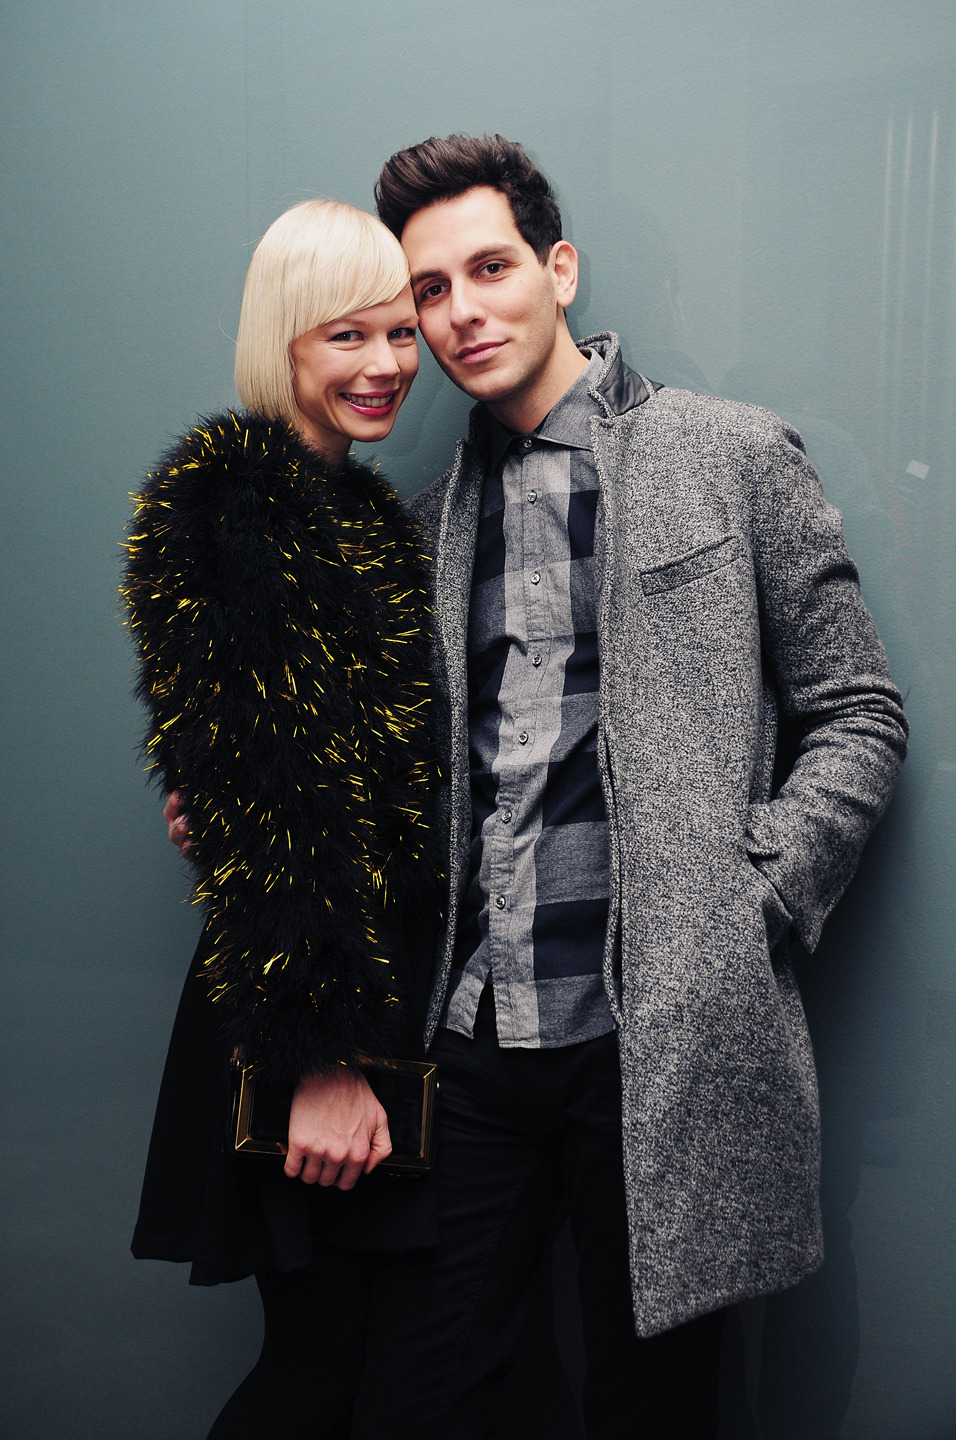 Erin Fetherston & Gabe Saporta backstage @ the Simon Spurr show in Milk Studios